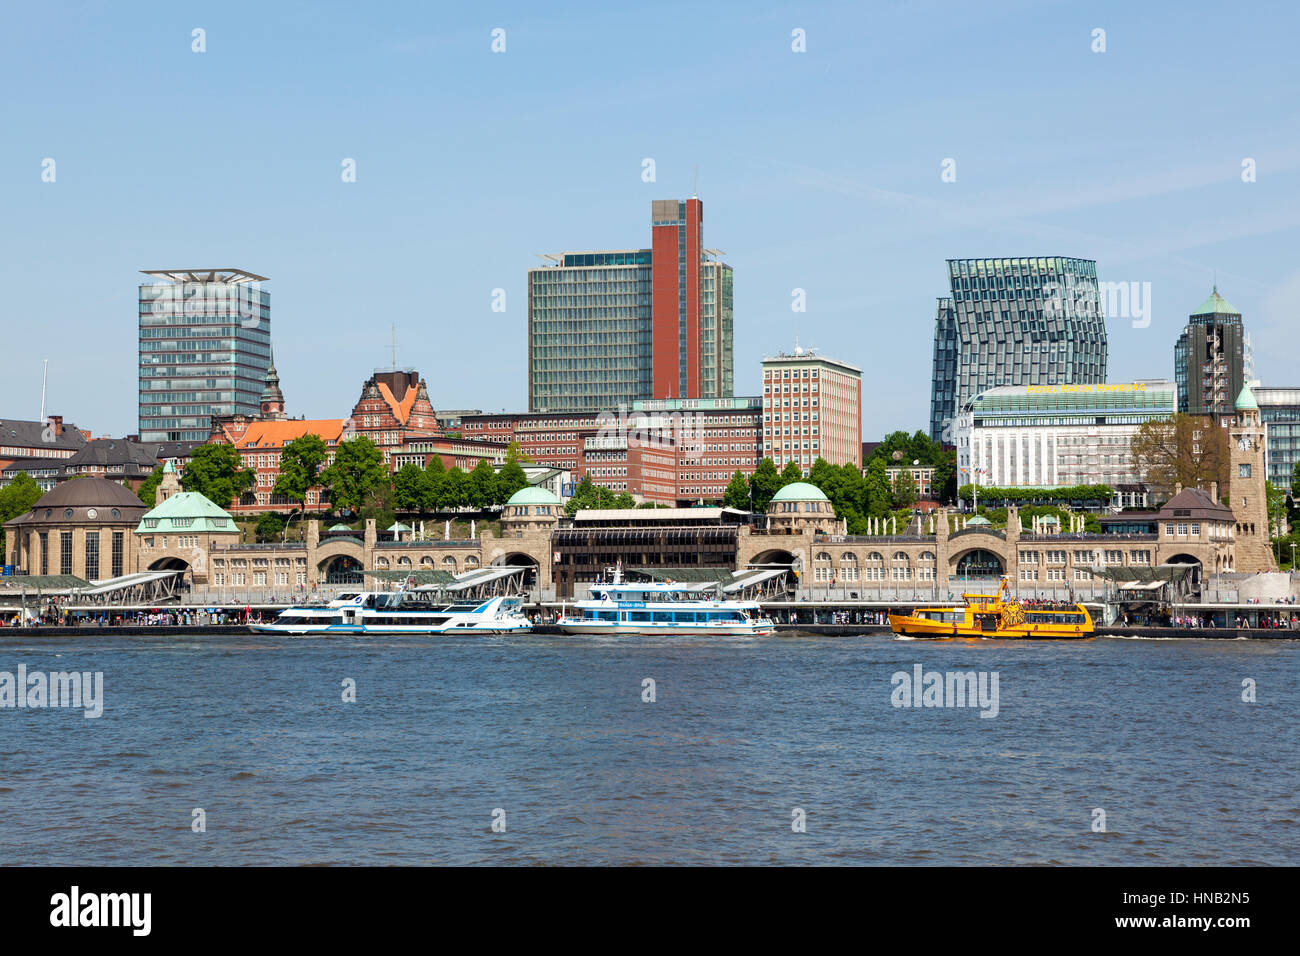 Hamburg, Germany - May 19, 2015: The St. Pauli Piers on the Elbe river, the largest landing place in the Port of - Stock Image